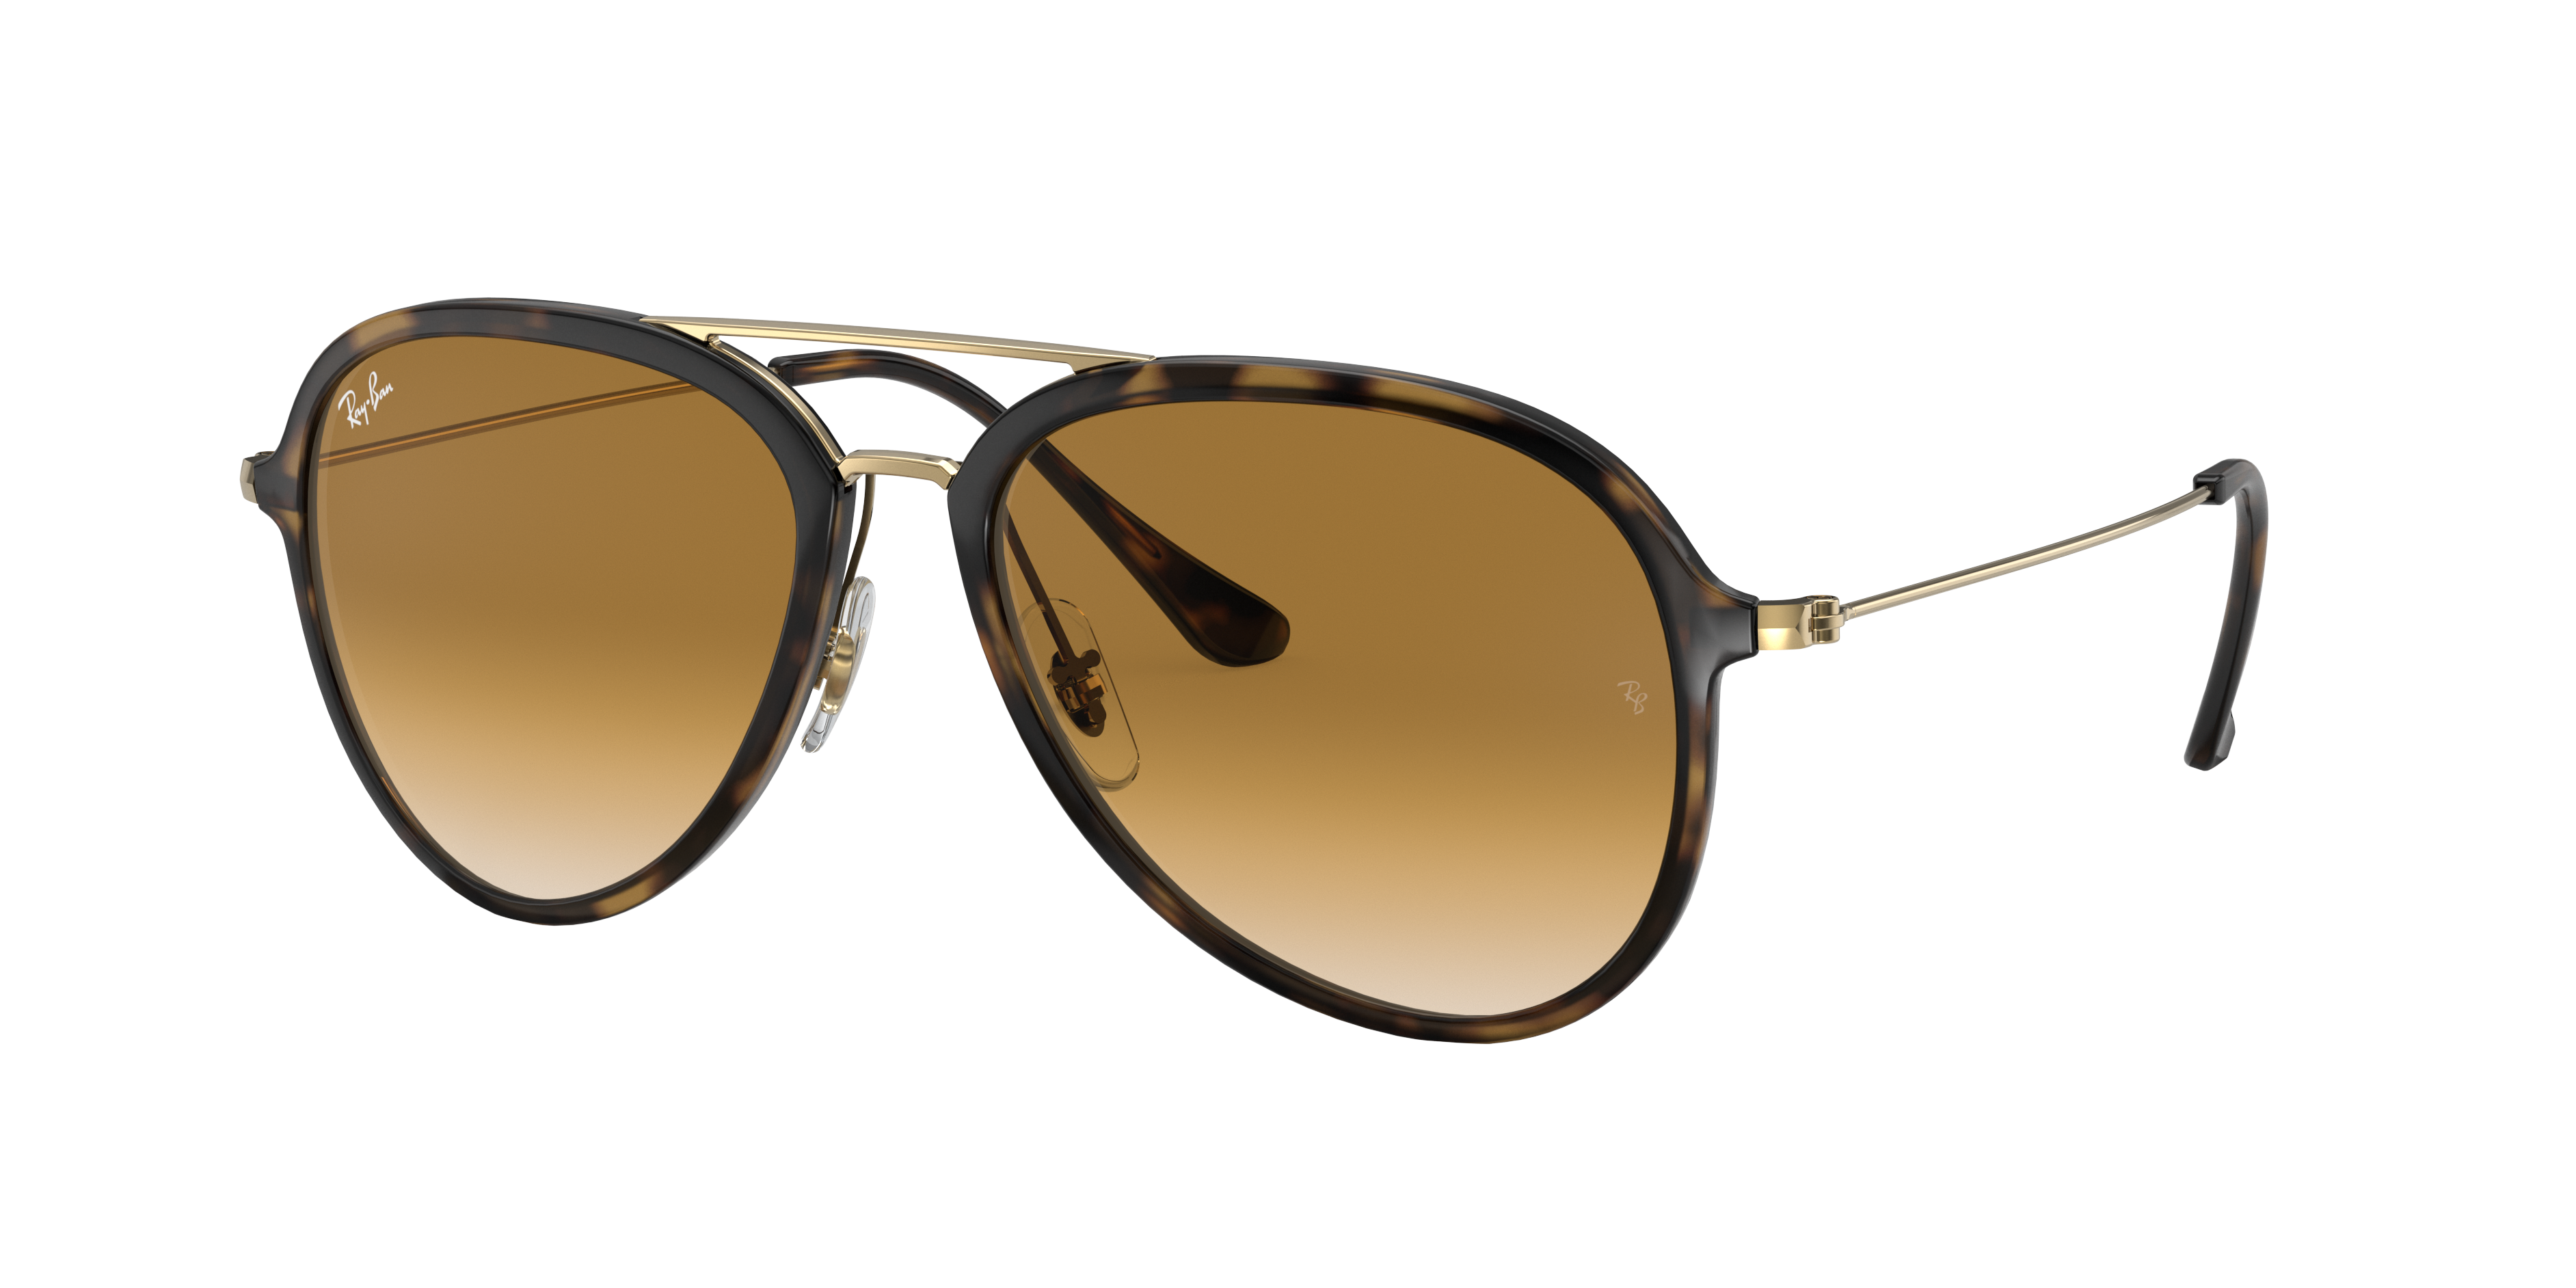 Ray-Ban Rb4298 Gold, Brown Lenses - RB4298